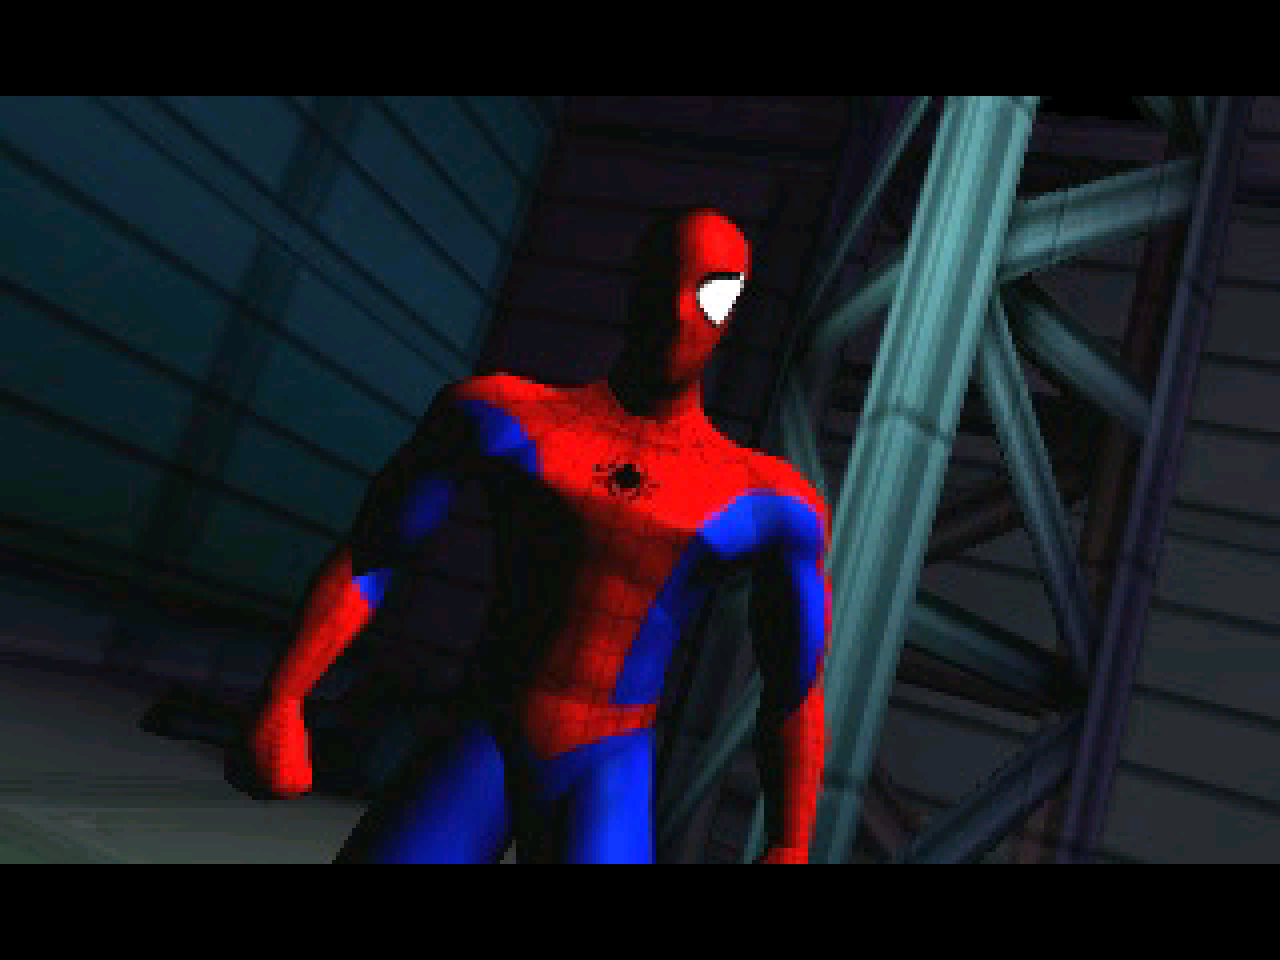 https://s3.eu-west-3.amazonaws.com/games.anthony-dessalles.com/Spider-Man 2 Enter Electro PS1 2020 - Screenshots/Spider-Man 2 Enter Electro-201125-184937.png